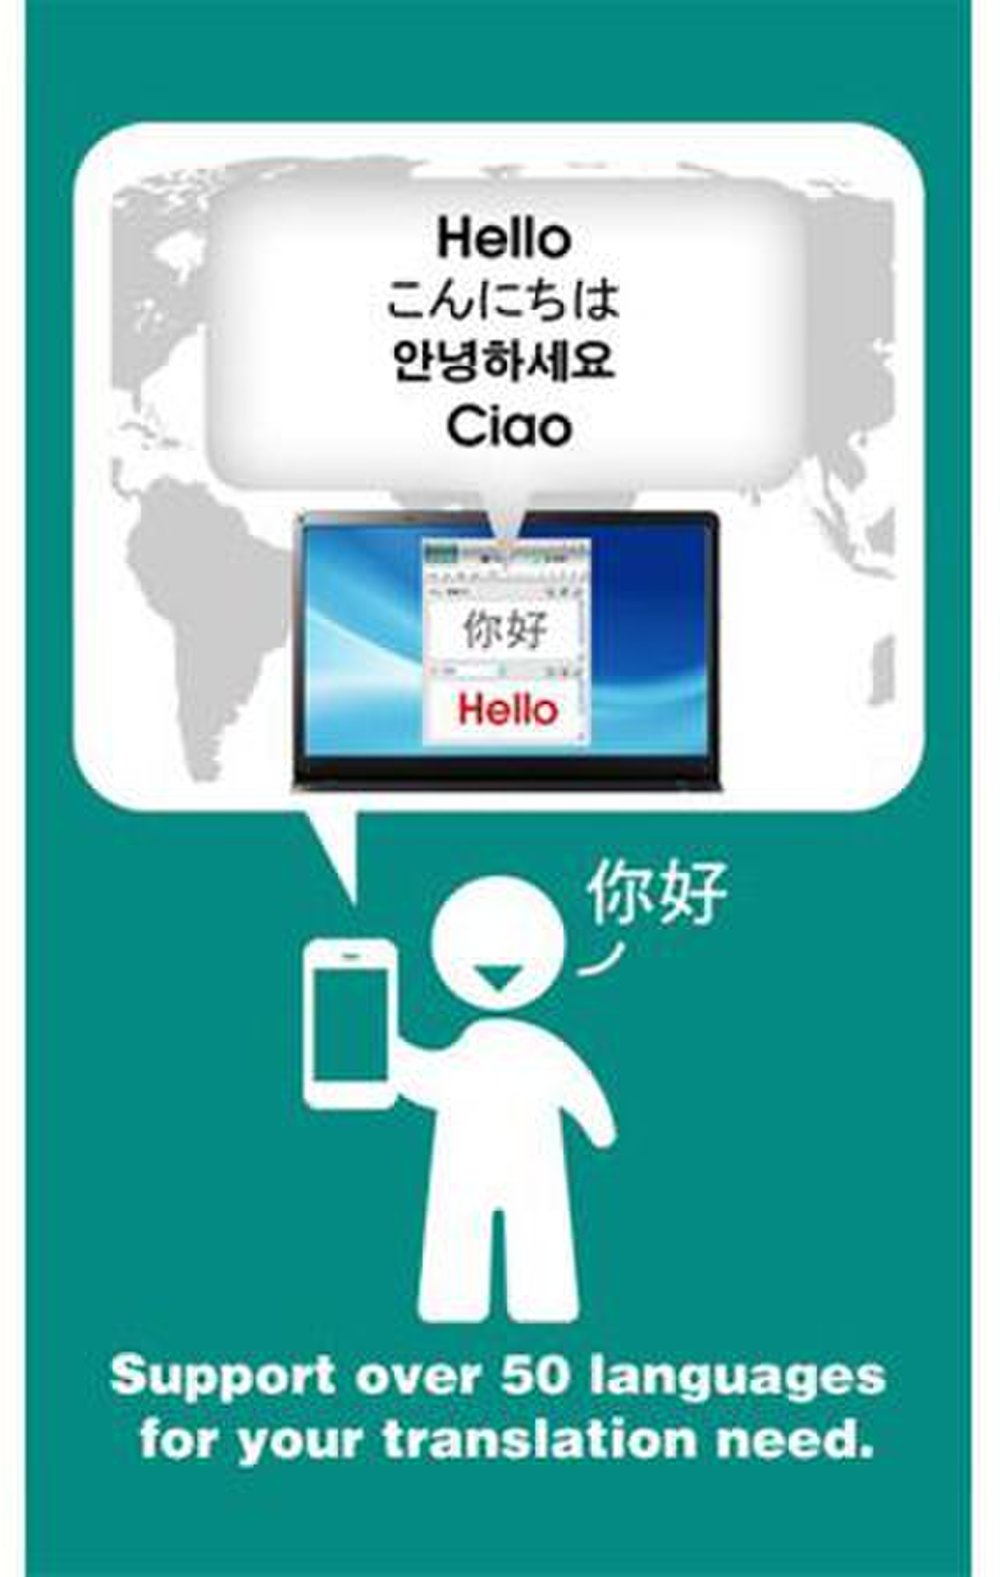 ViaTalk image: The app's translation capabilities are its most innovative feature.